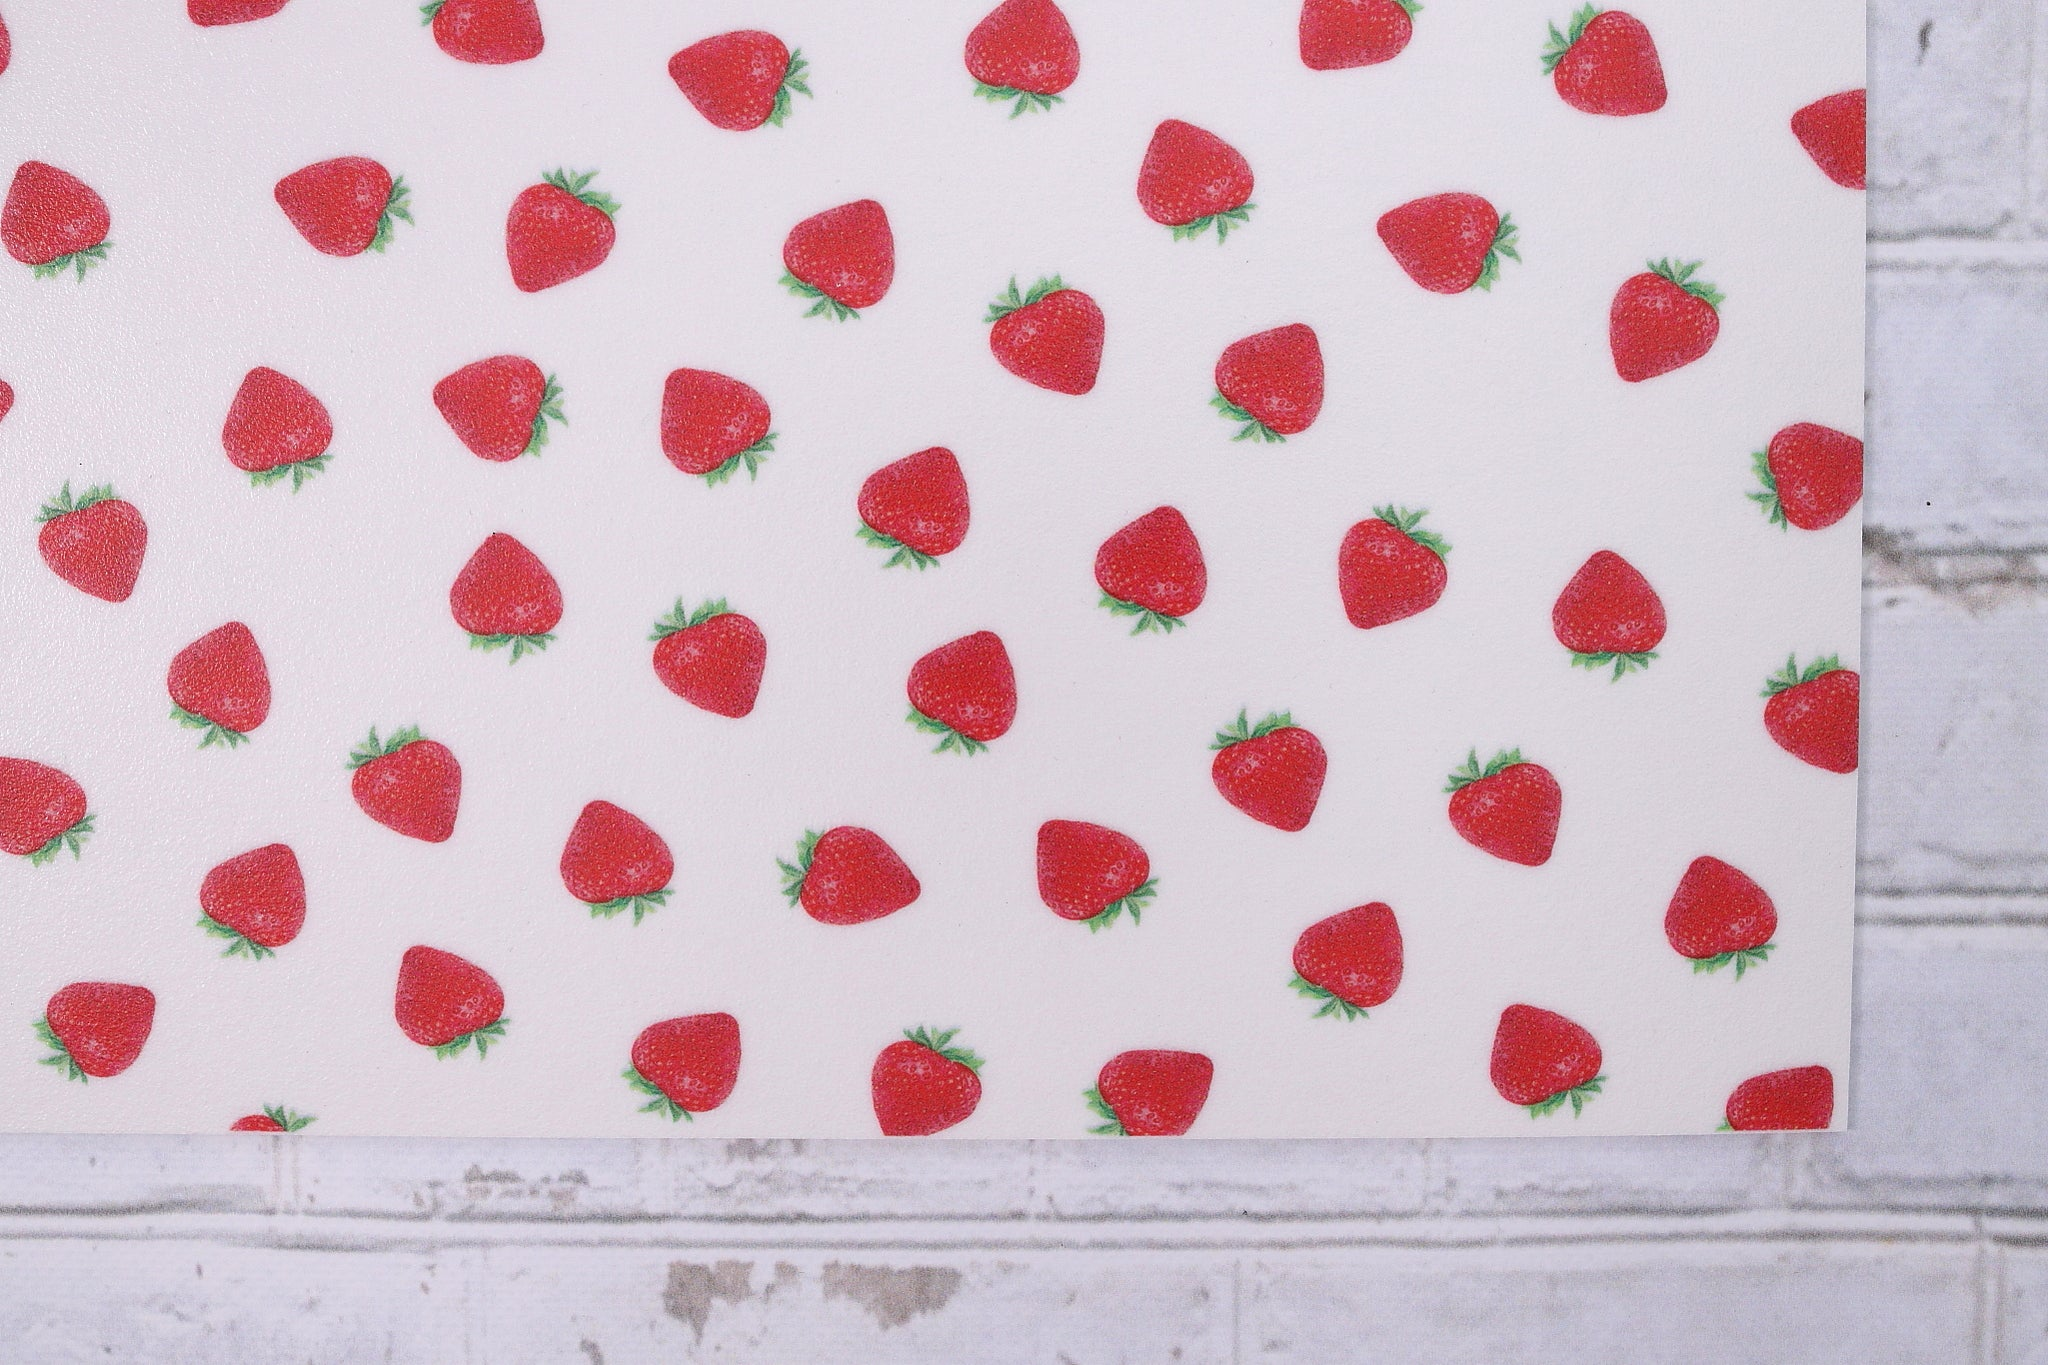 Napperon de Vinyle - Fraise / Strawberry